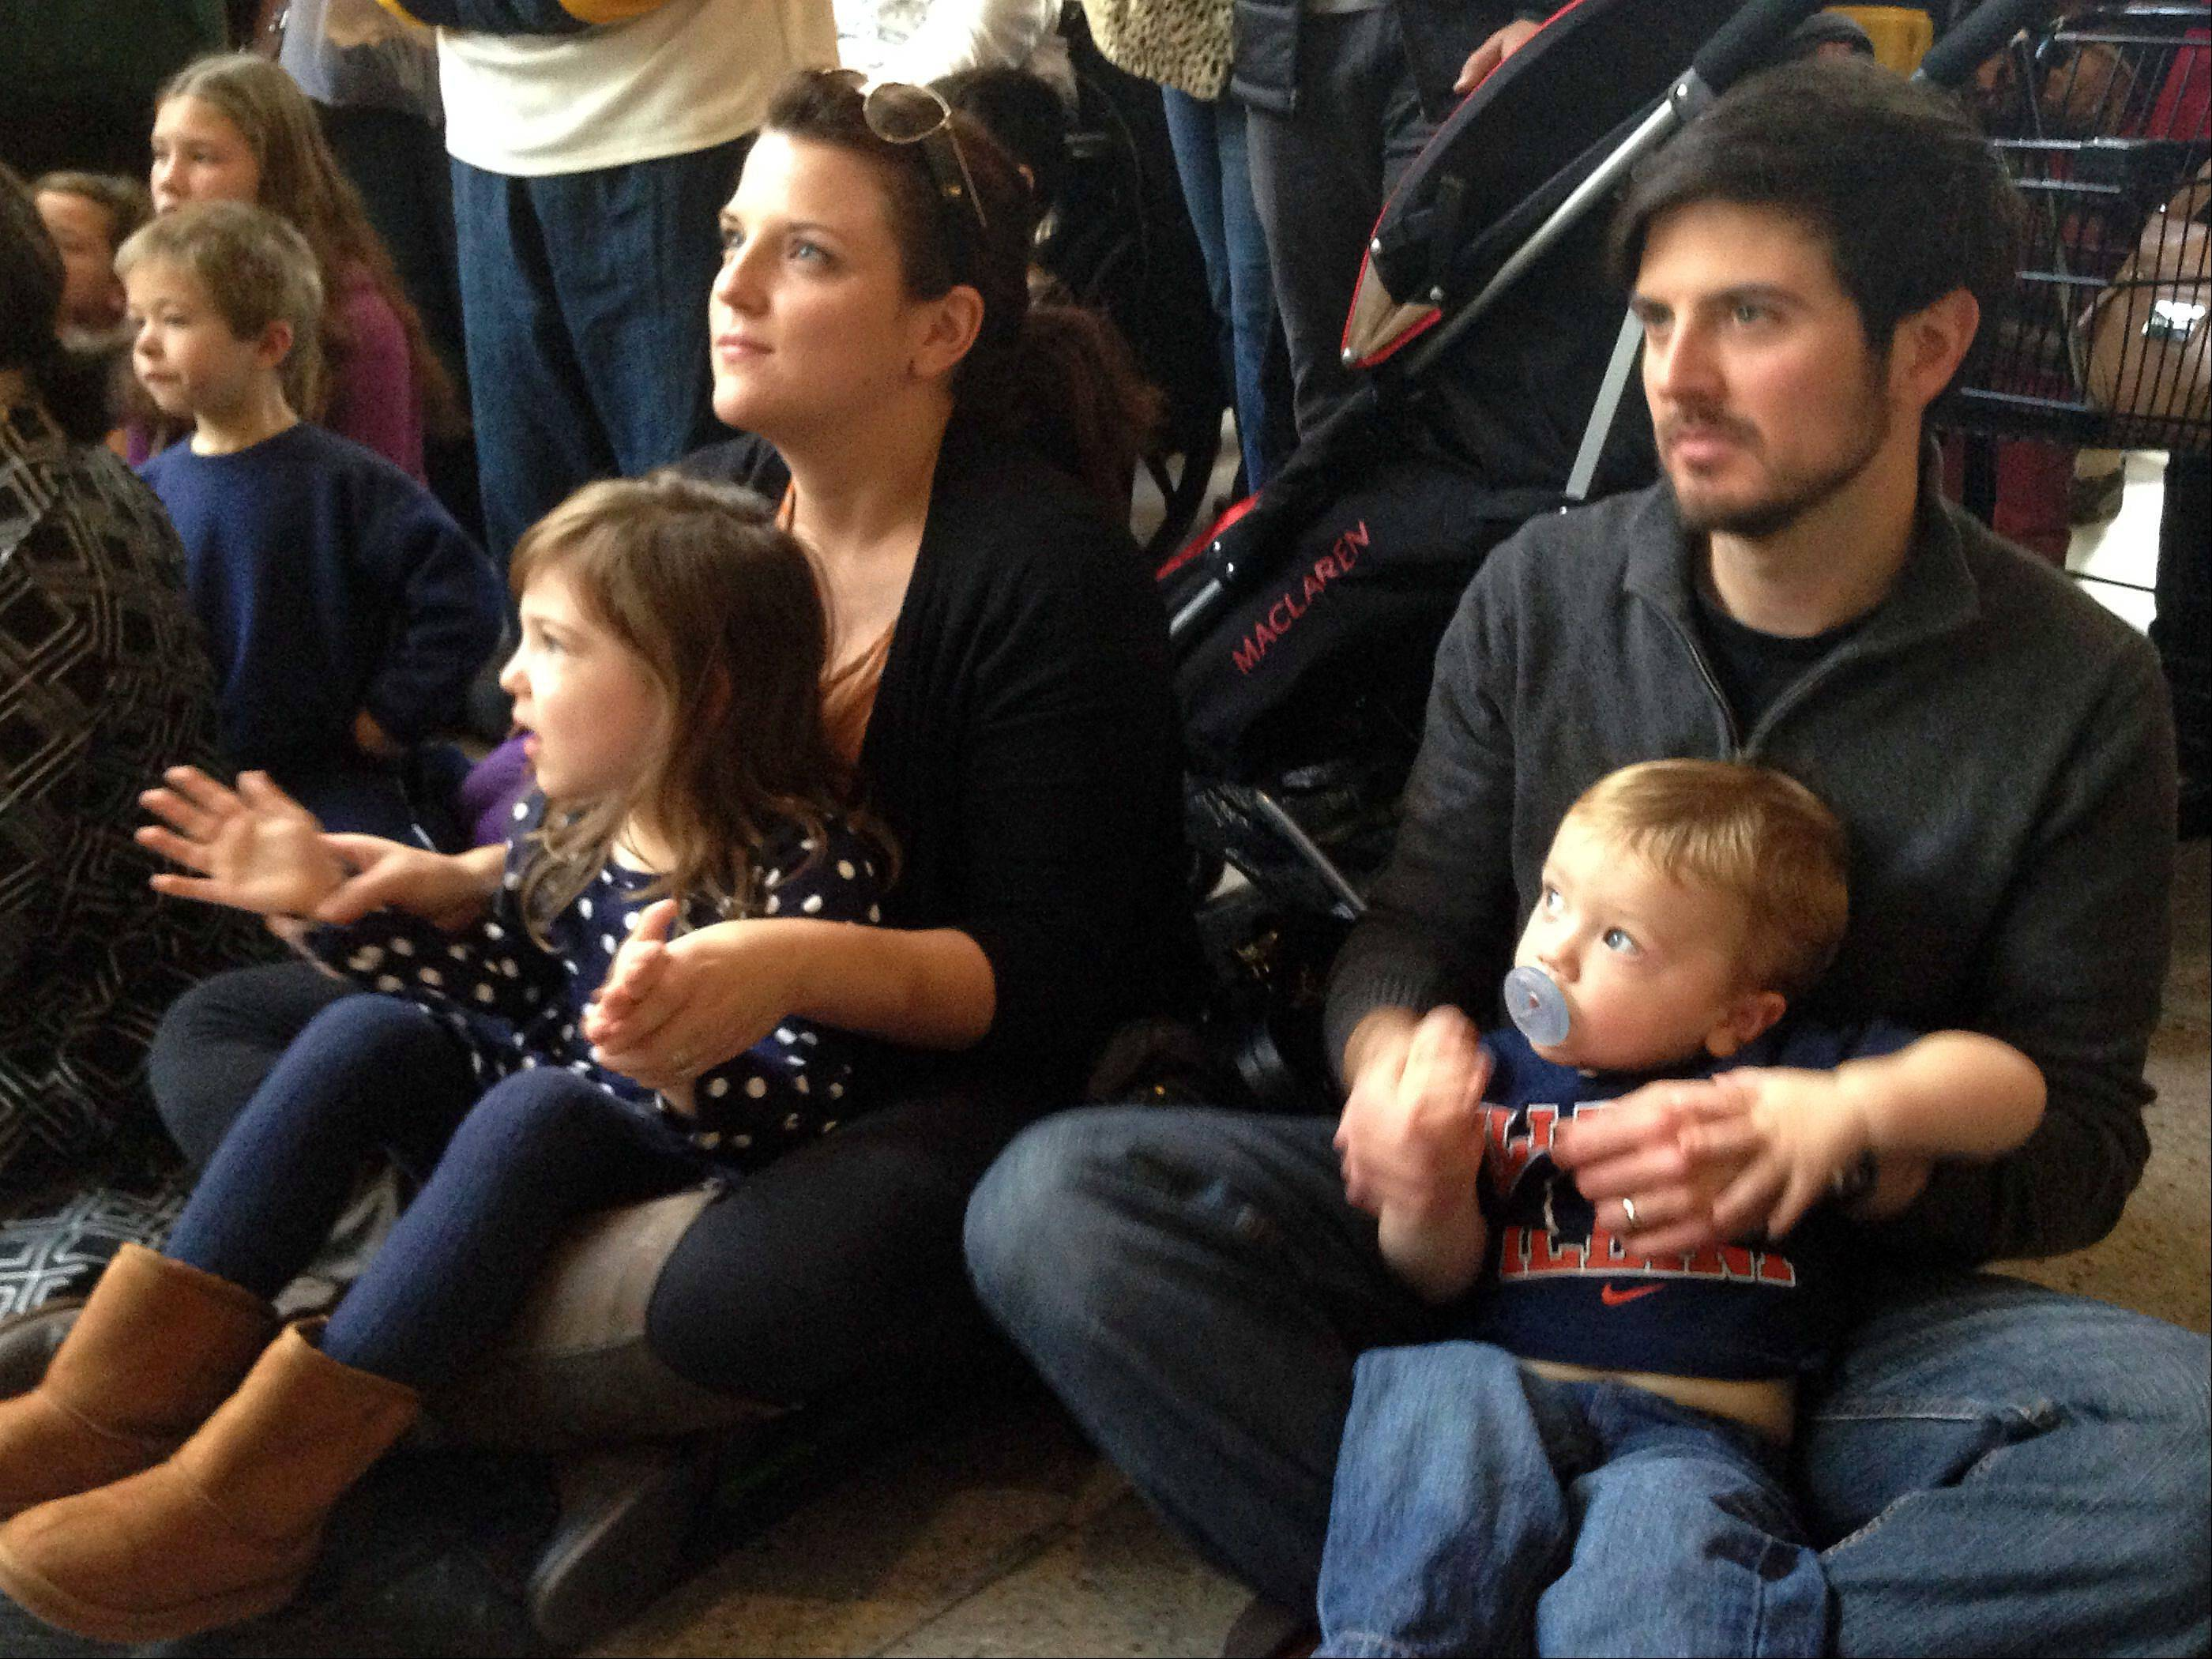 Dave and Carrie Jodelka, with their kids Penny, 4, and Jimmy, 18 months, watched a performance by the cast of the Chicago musical Million Dollar Quartet on Saturday at Yorktown Center in Lombard.